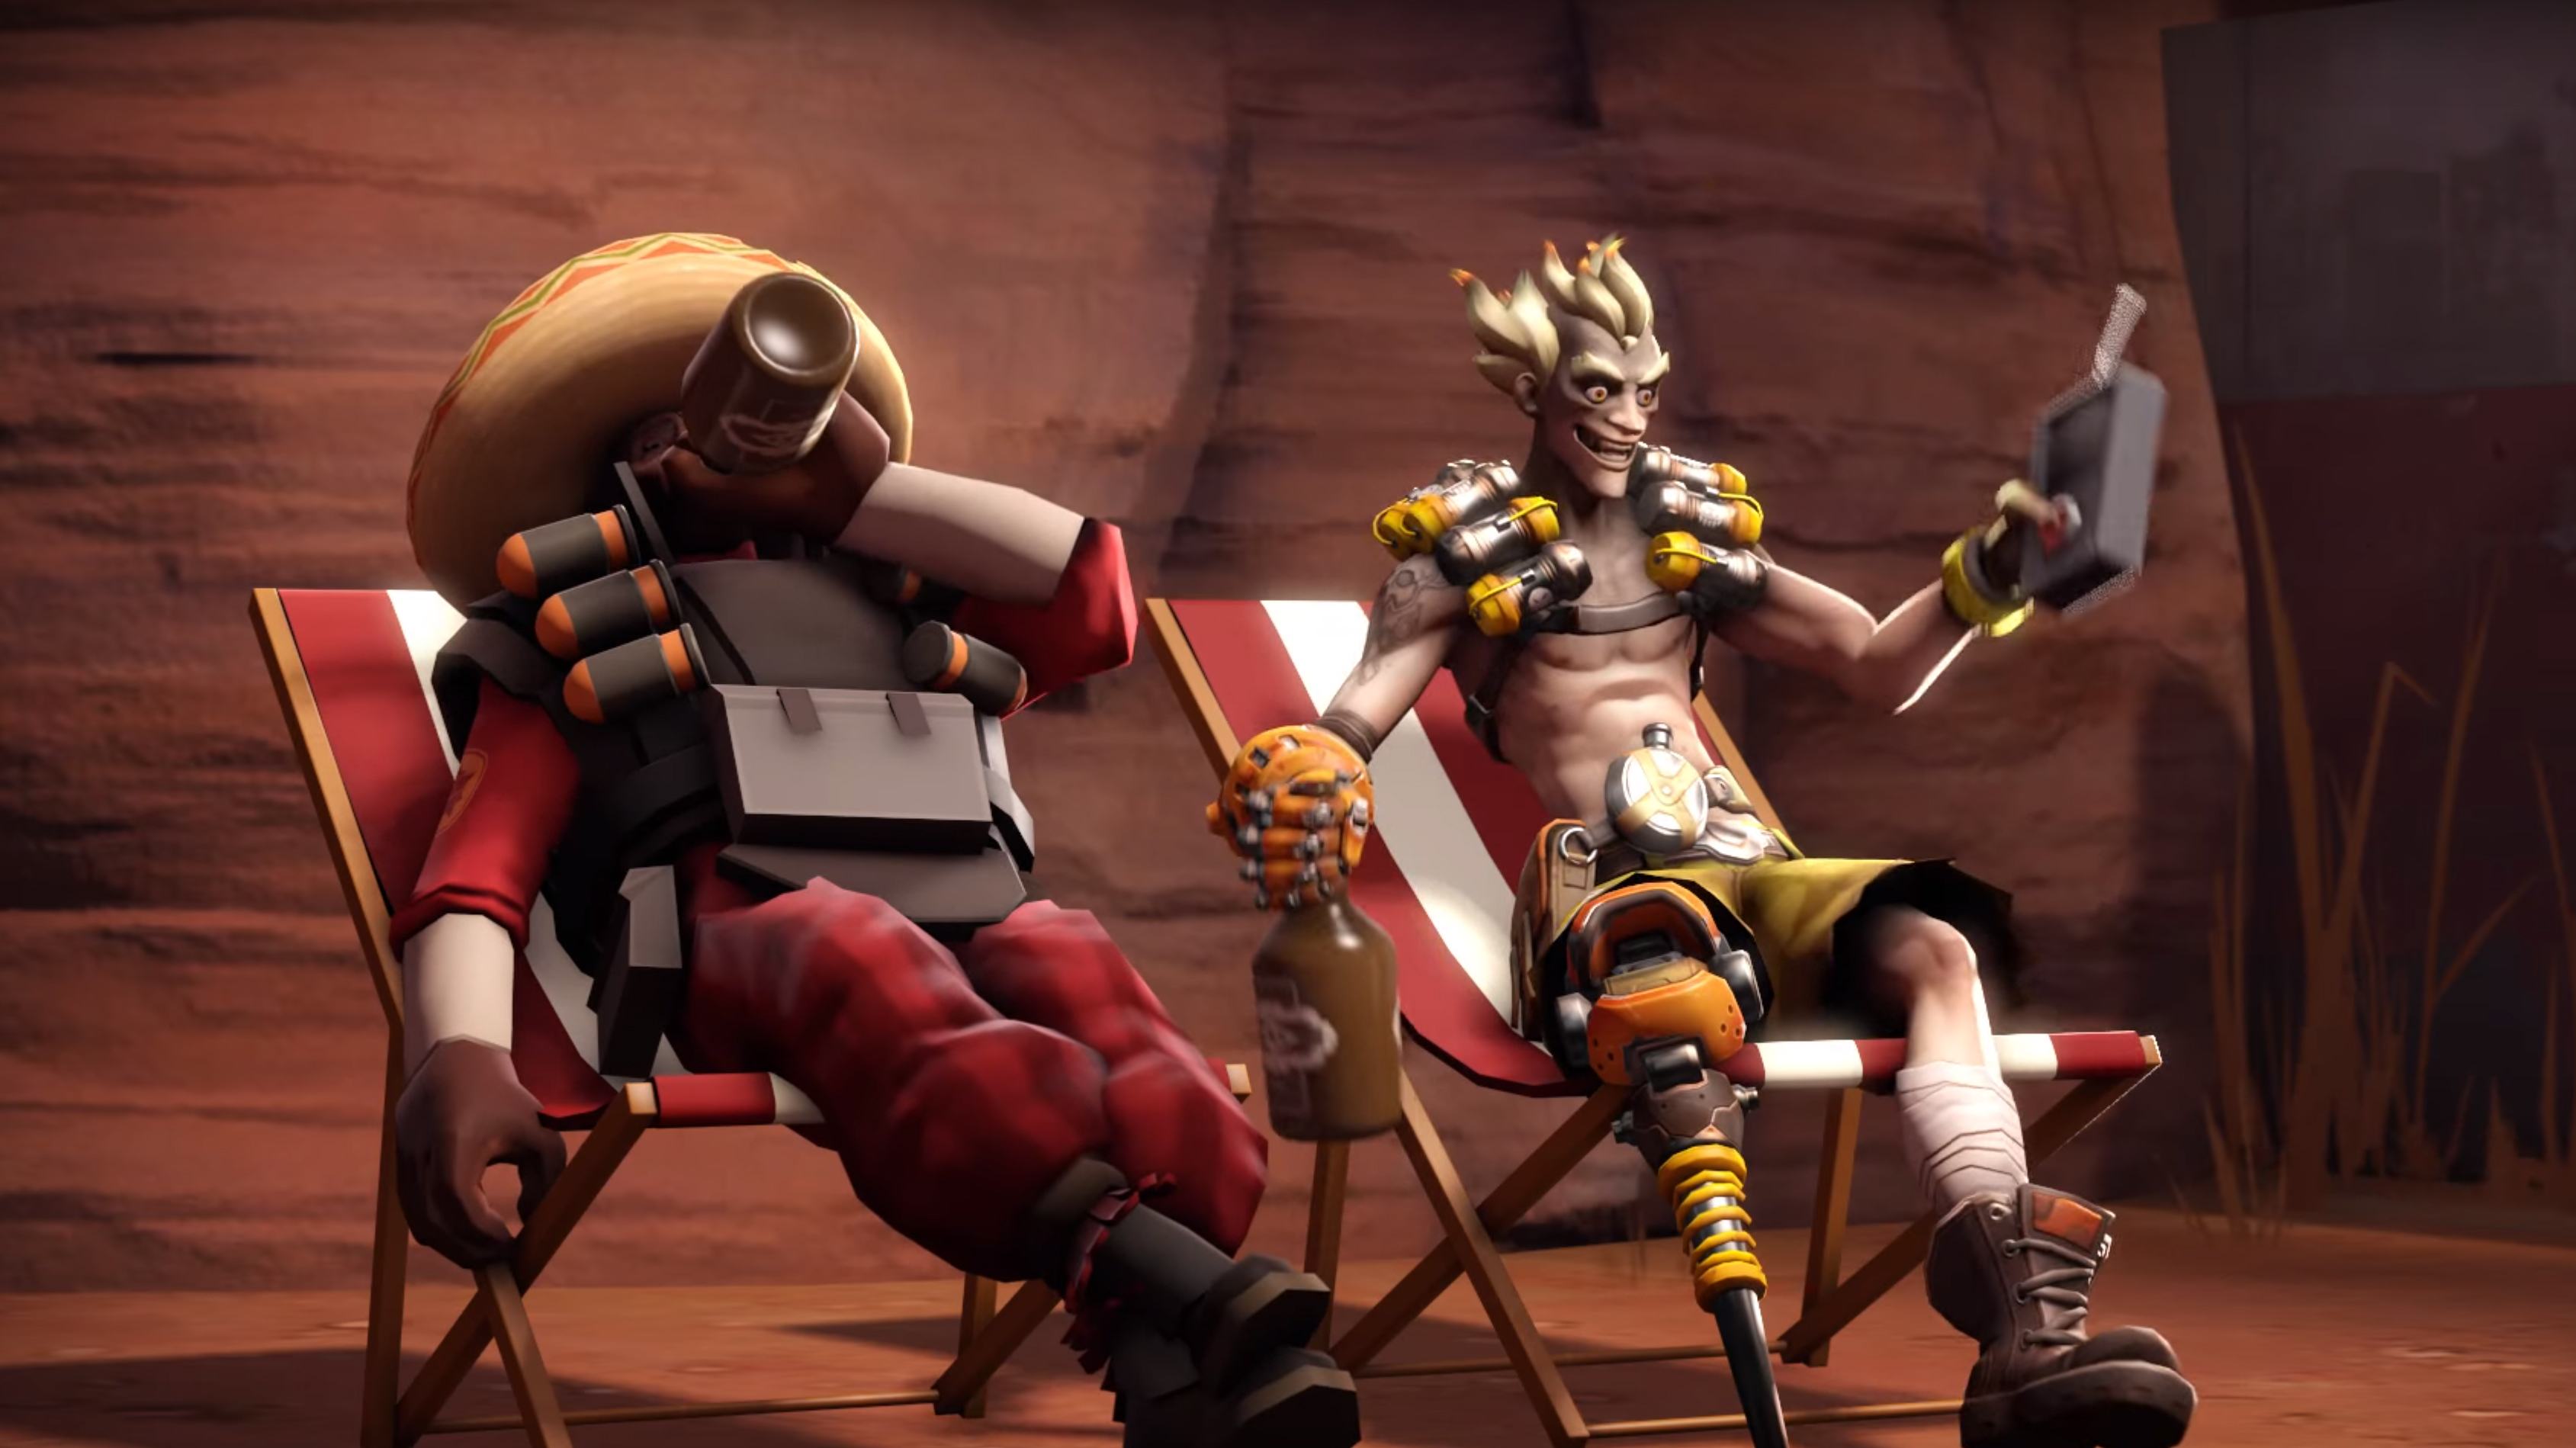 Team Fortress 2 The Dream Fight Is Real Thanks To This Incredible Fan Animation